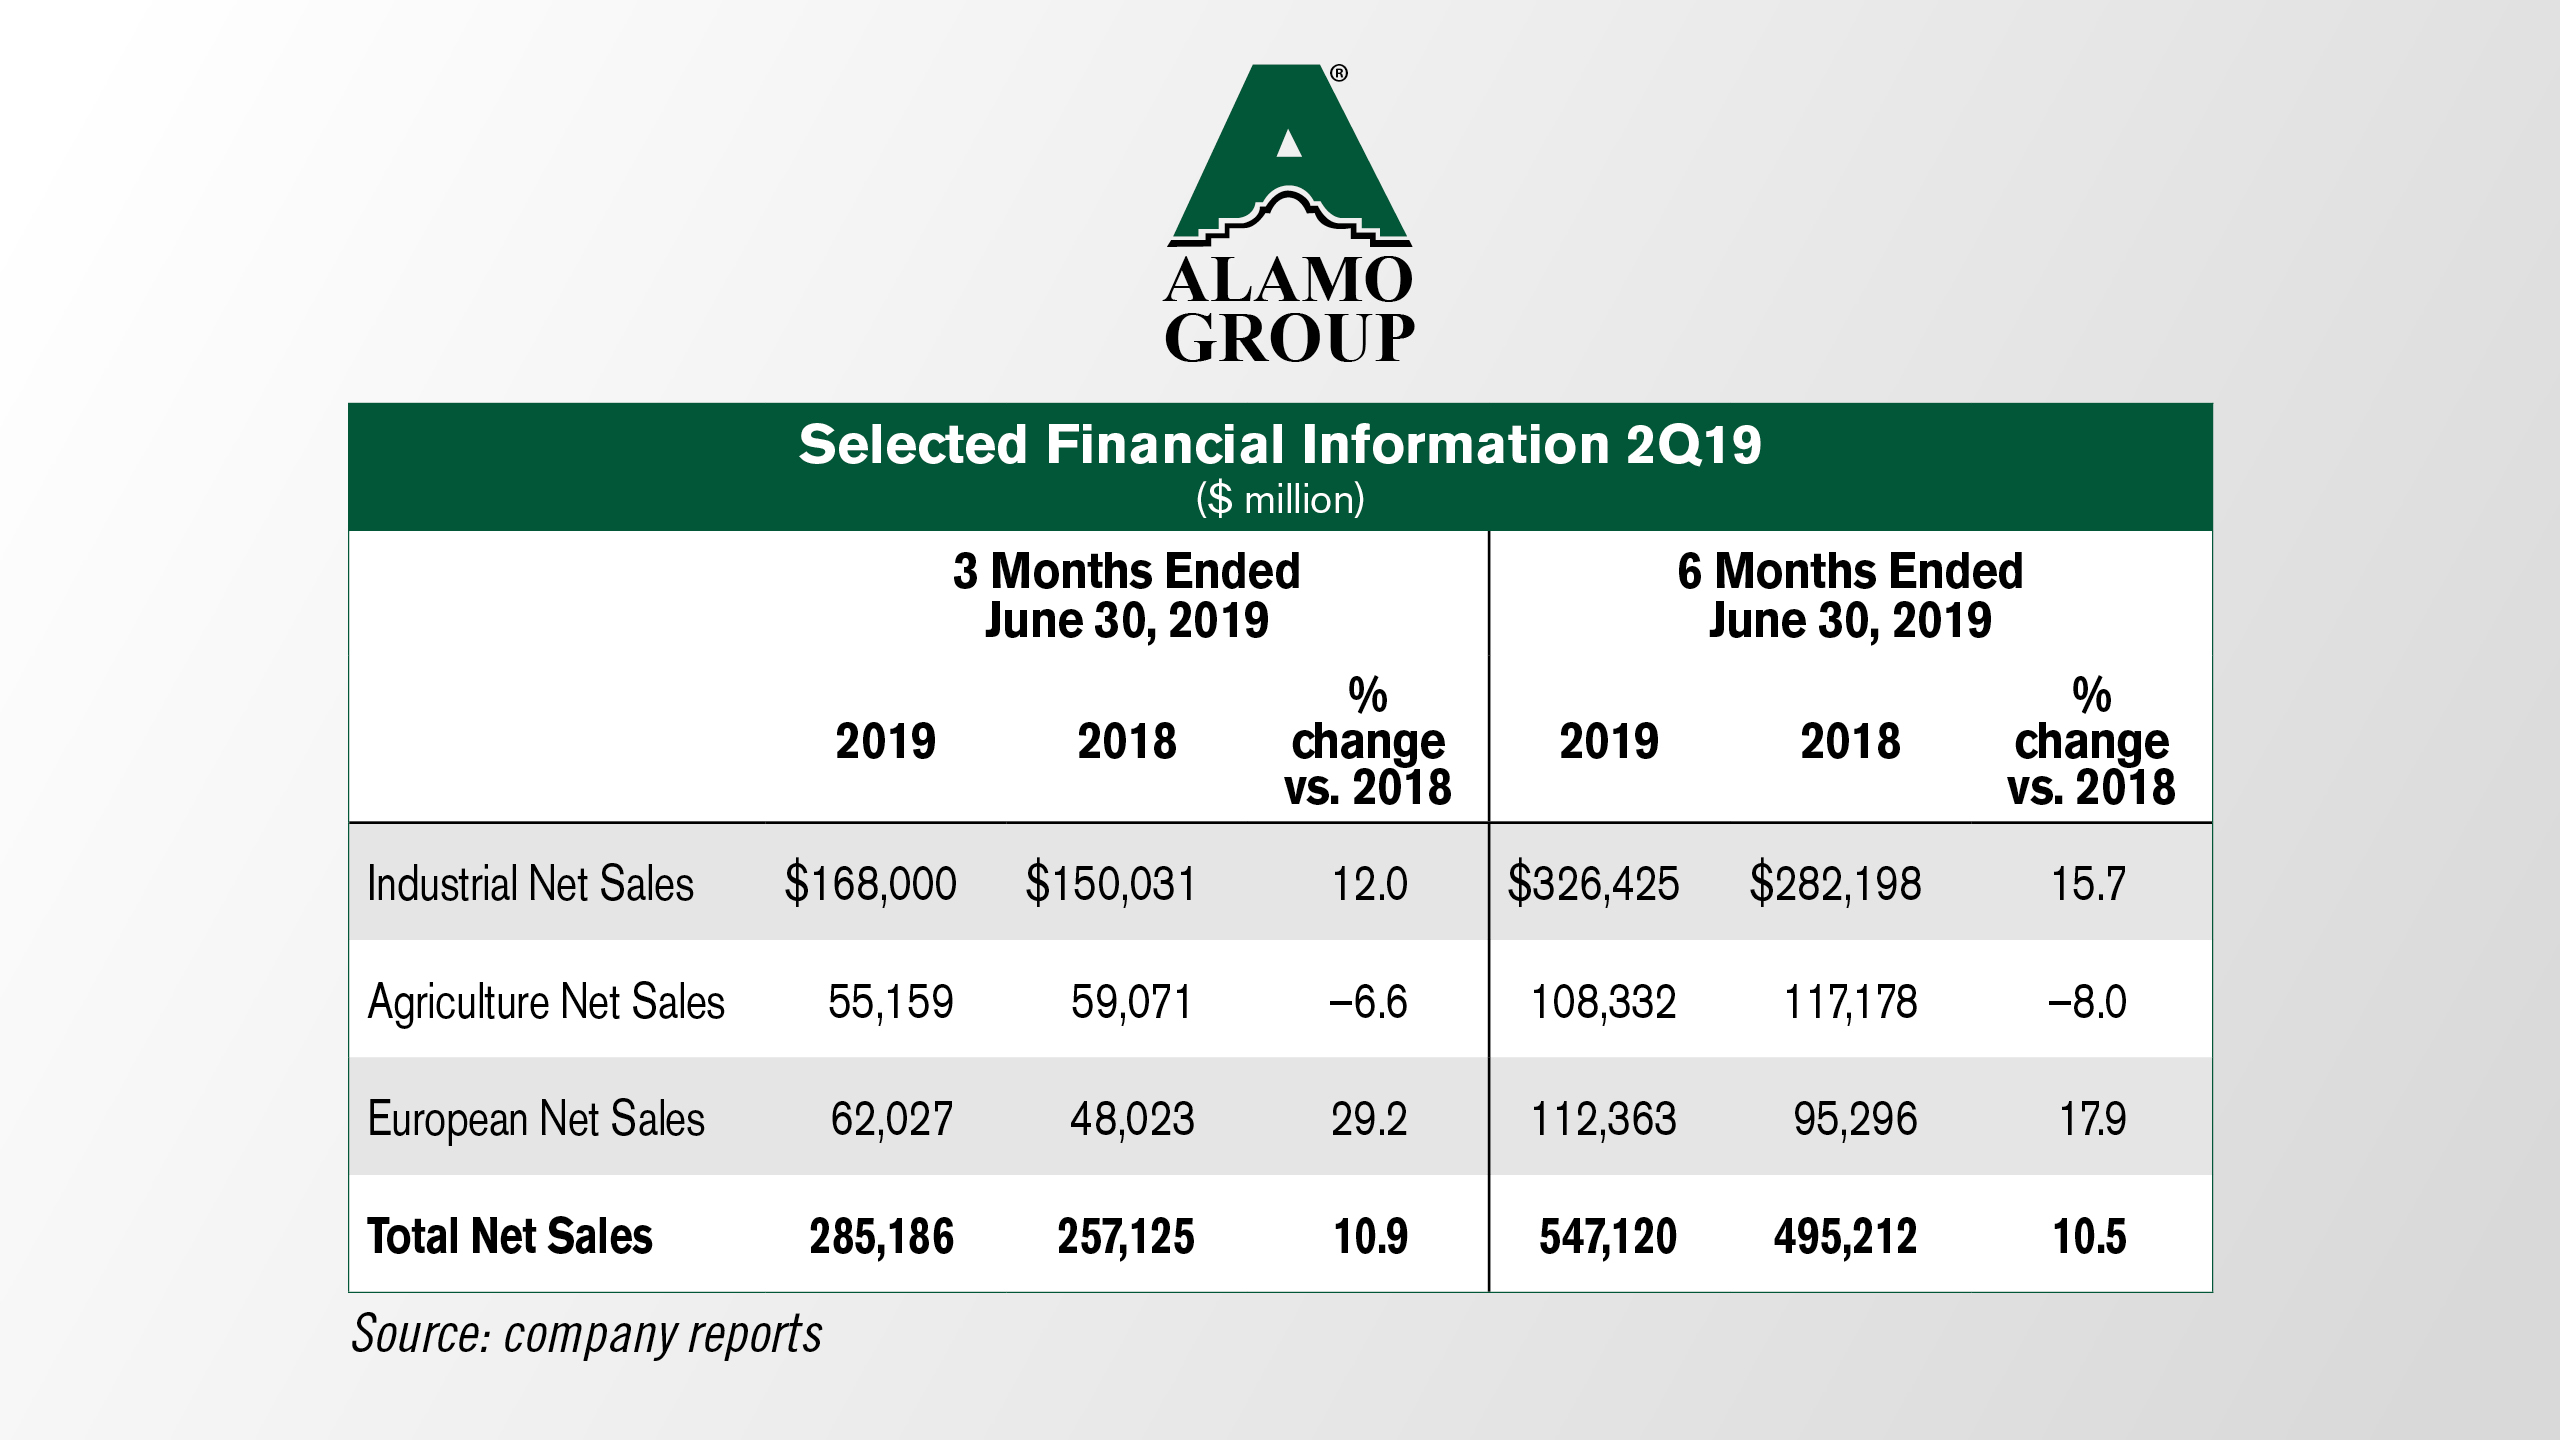 Alamo-Group-Selected-Financial-Information-2Q19.jpg